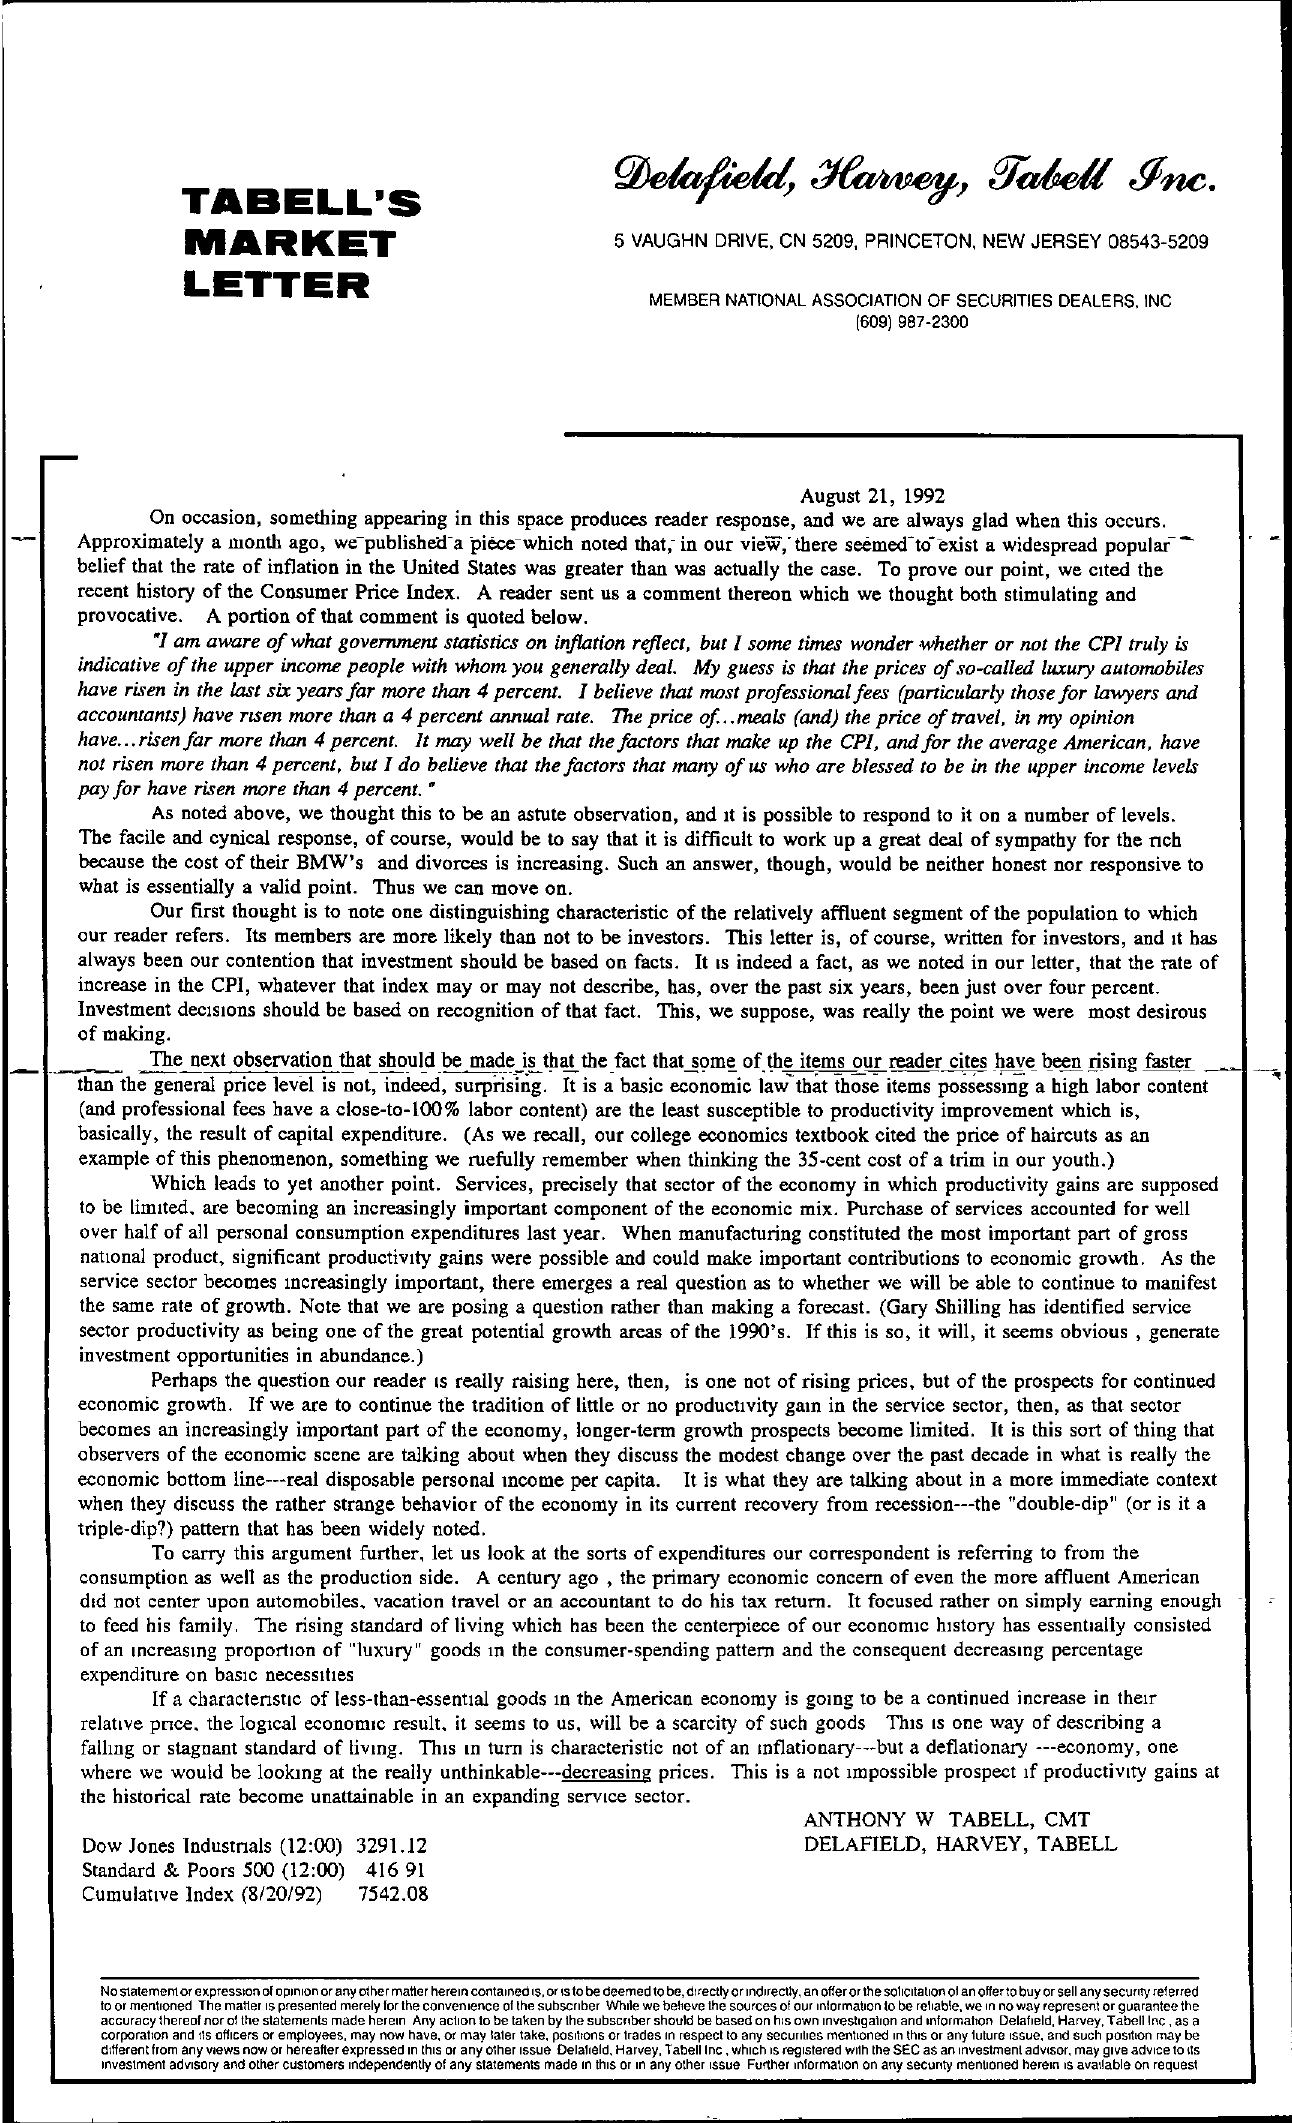 Tabell's Market Letter - August 21, 1992